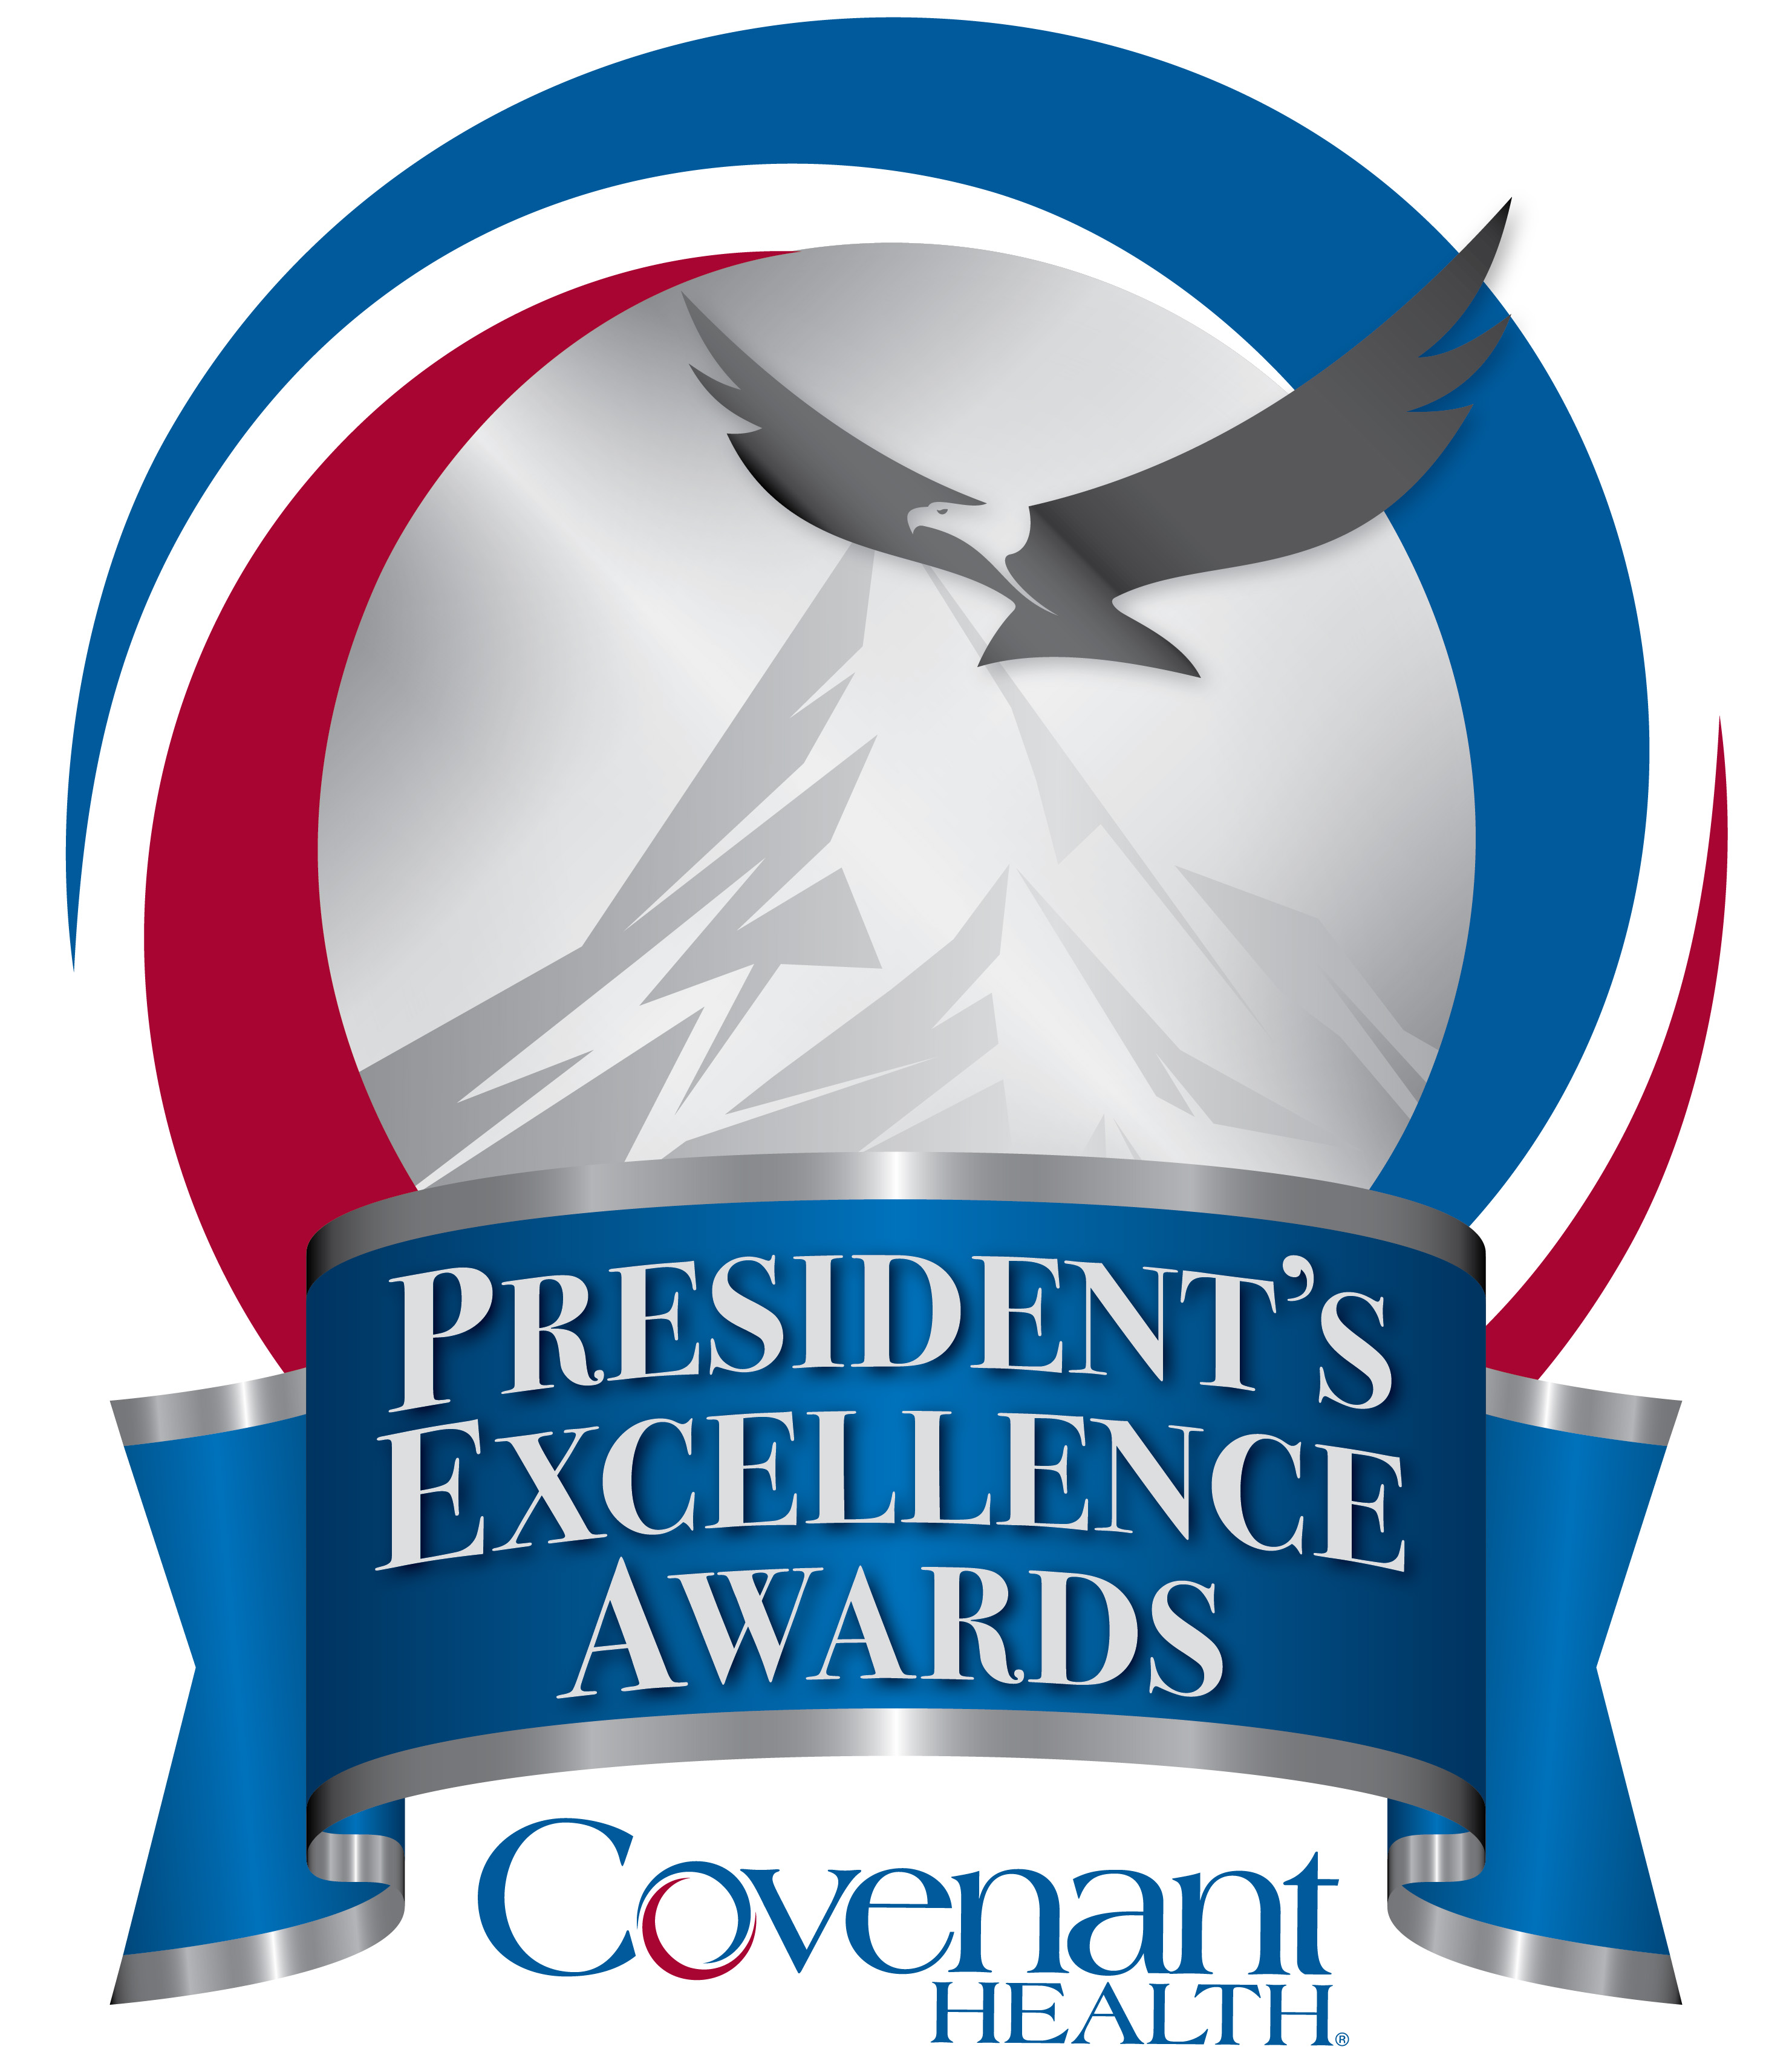 Celebrating Our President's Excellence Awards